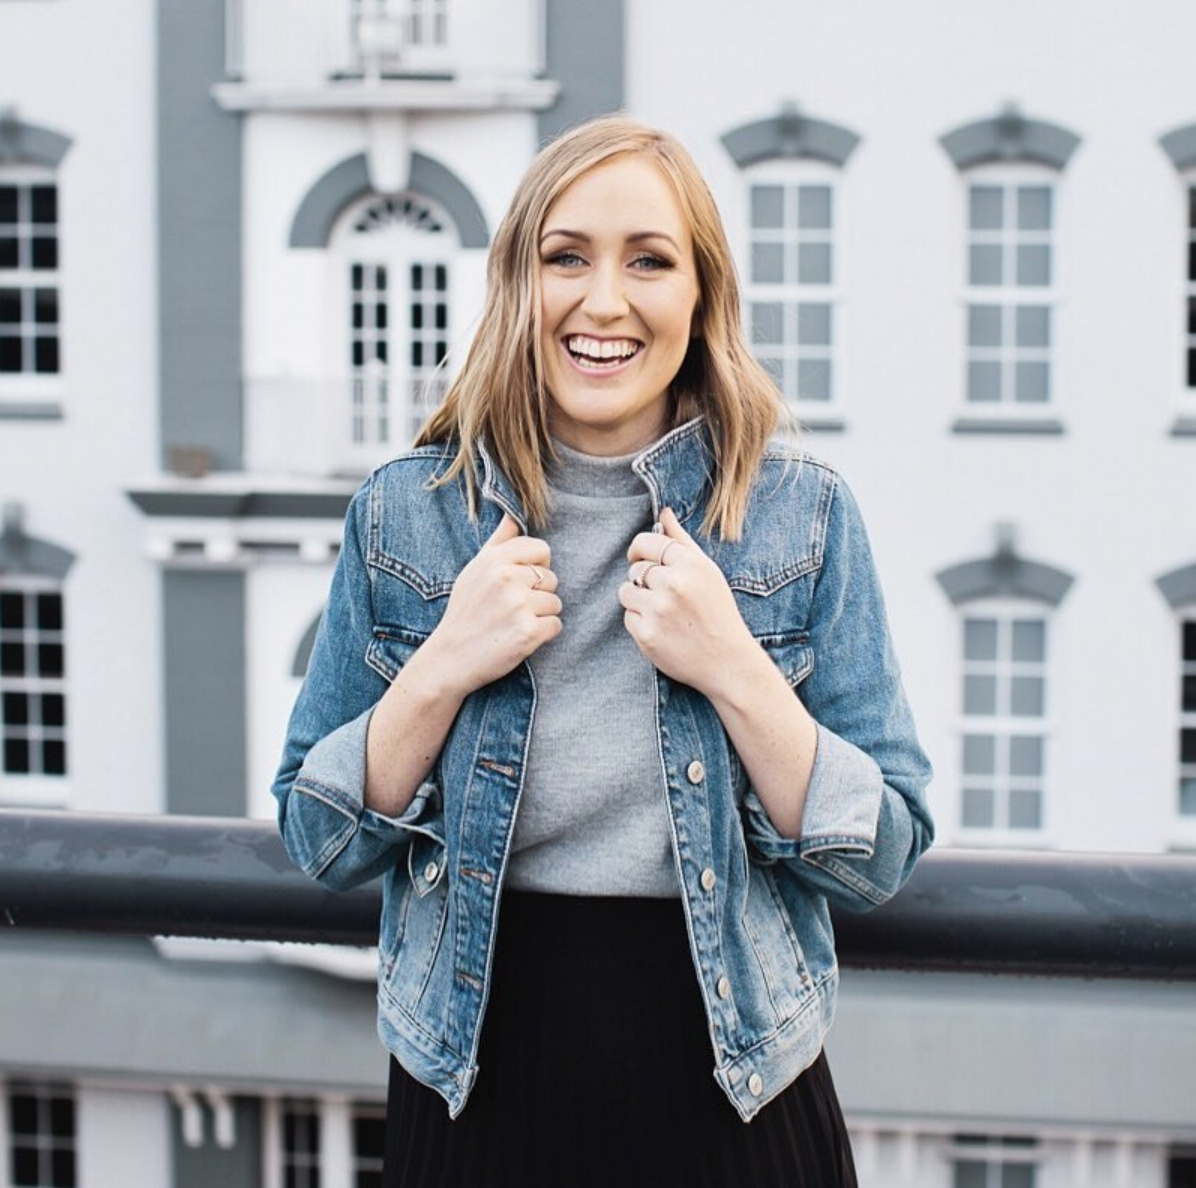 Sam Brown - Sam is a mindset coach for Perfectionists and runs a very successful Personal Development blog. Sam is also the host of her own Podcast and aims to help perfectionists get out of their own way and reach their potential.WEBSITE | PODCAST | INSTAGRAM